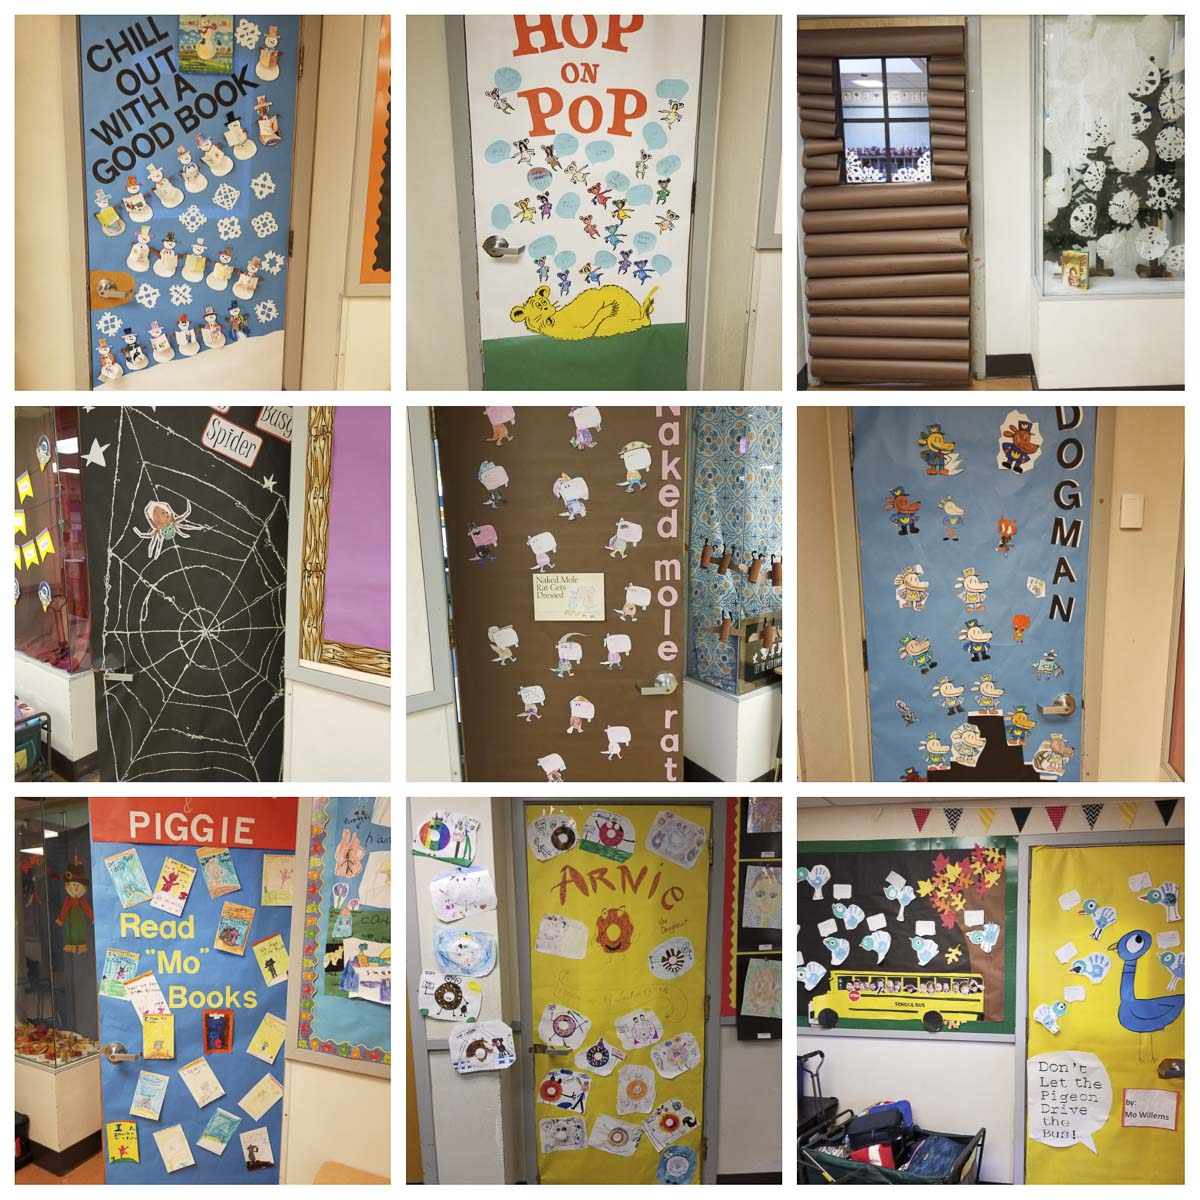 Union Ridge Elementary School students decorated their classroom doors with literary themes for their annual Read-a-Thon fundraiser. Photo courtesy of Ridgefield Public Schools